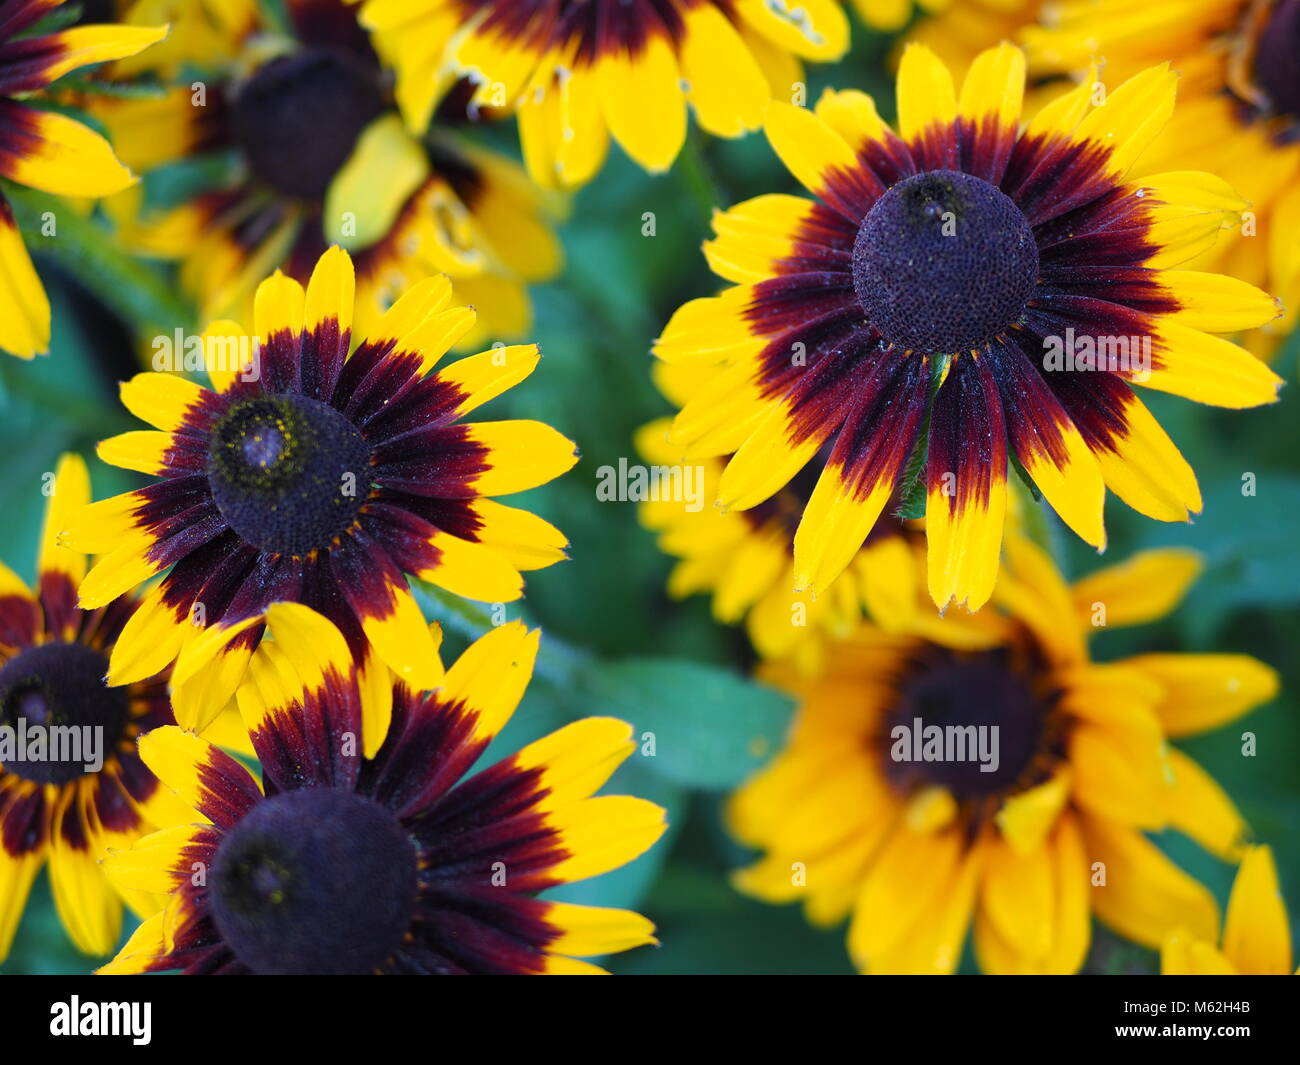 Flowers with yellow and black centre stock photos flowers with yellow and black flowers stock image mightylinksfo